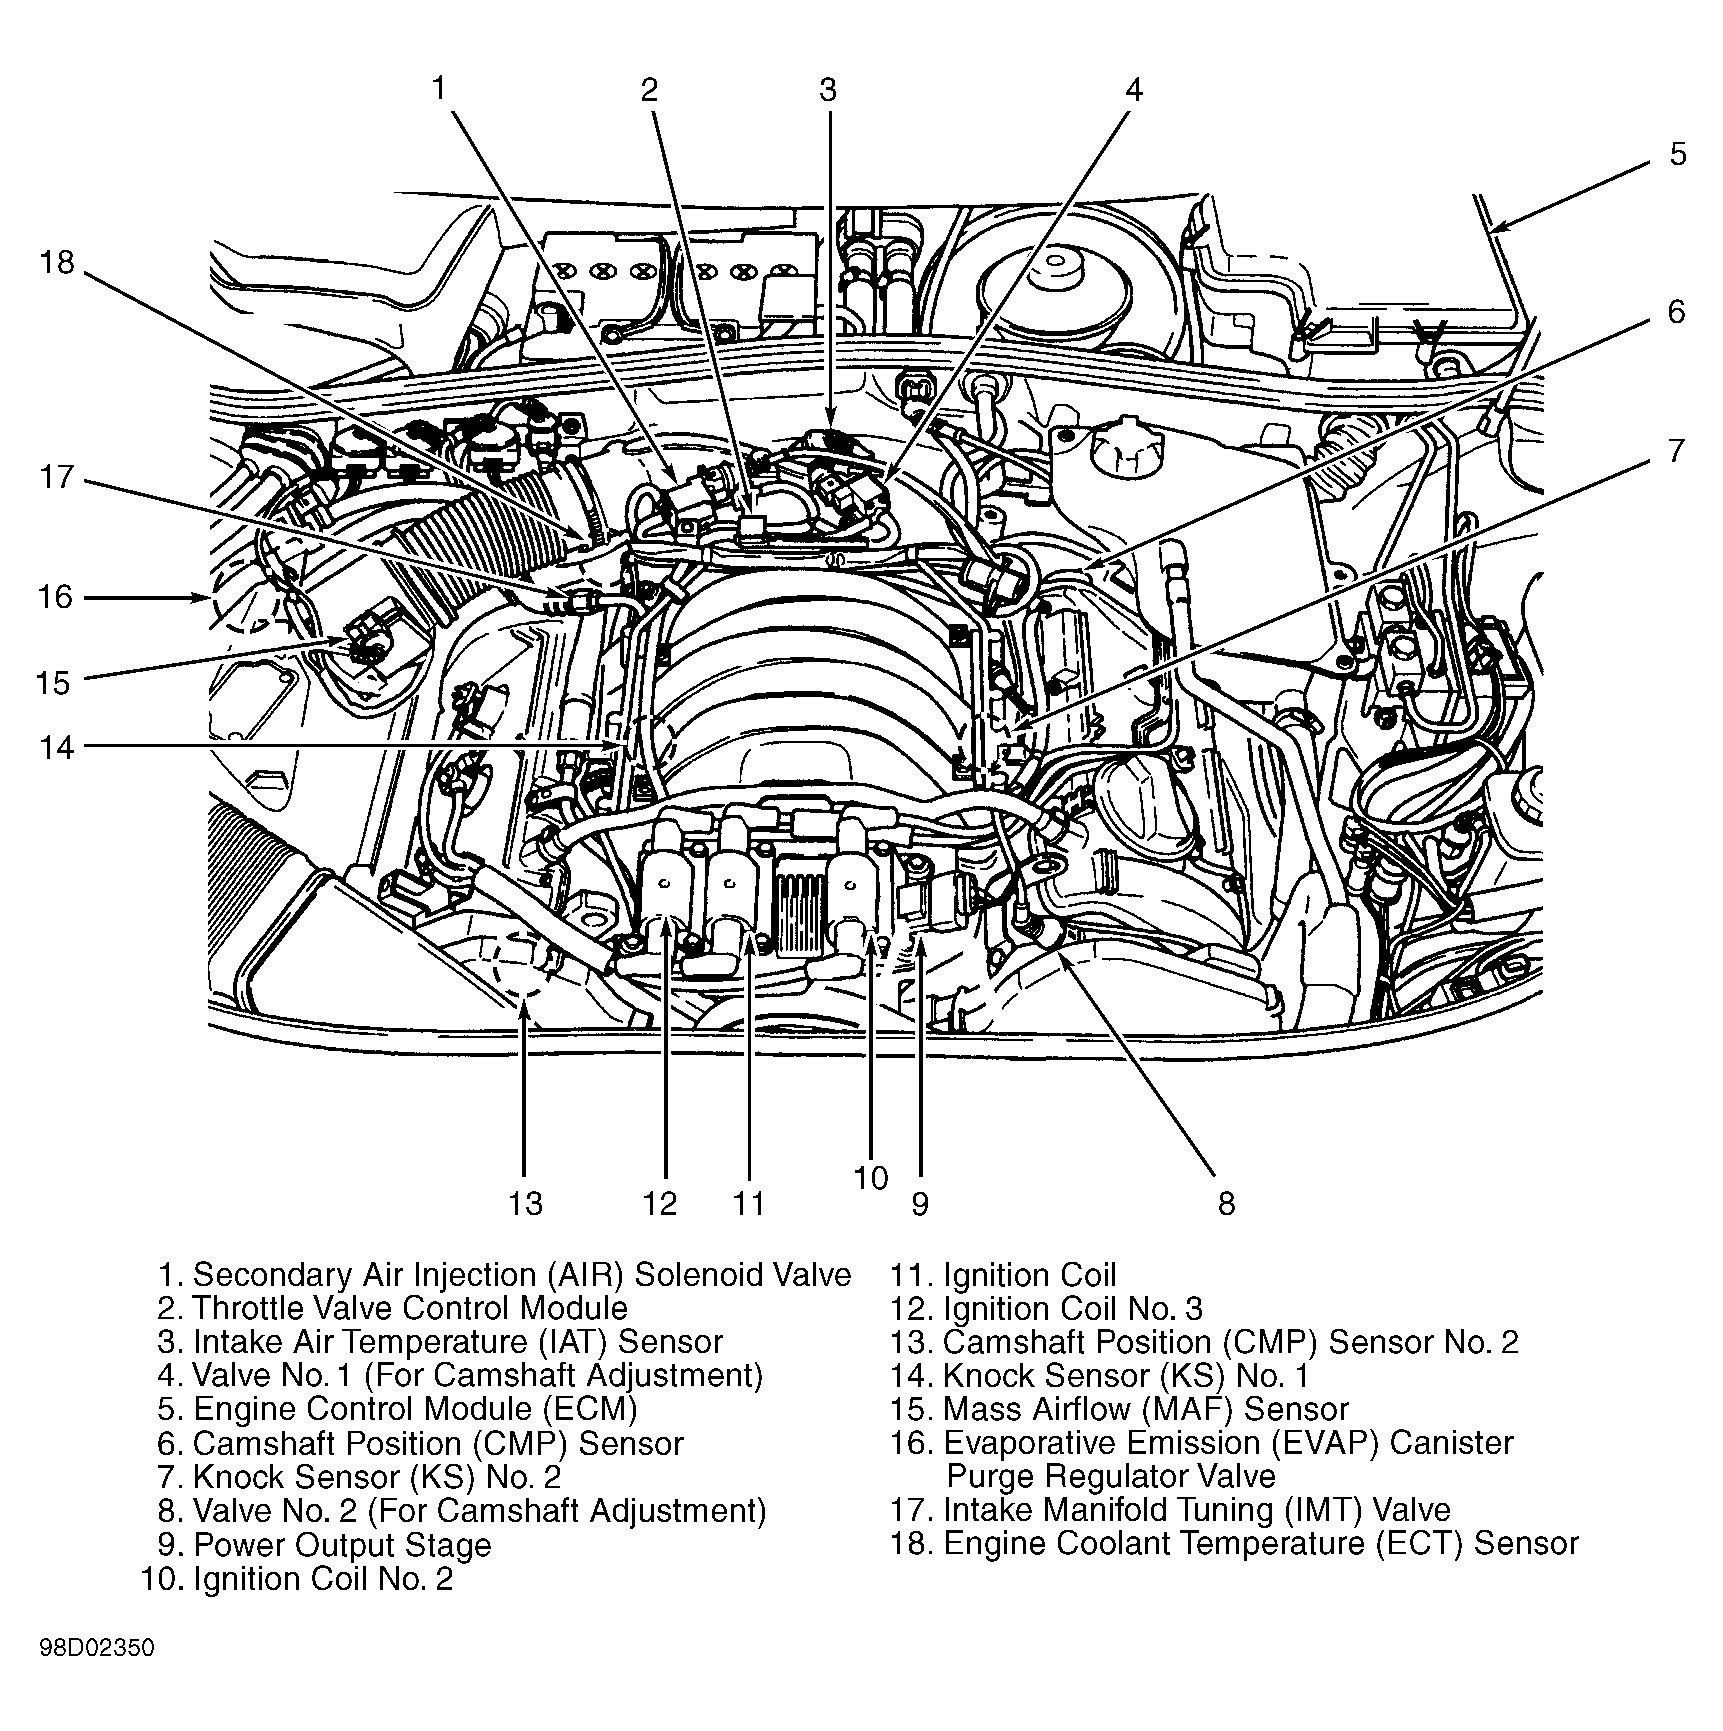 2000 Chrysler 300m Engine Diagram 2005 Dodge Charger Engine Diagram Wiring Diagram Schema Of 2000 Chrysler 300m Engine Diagram